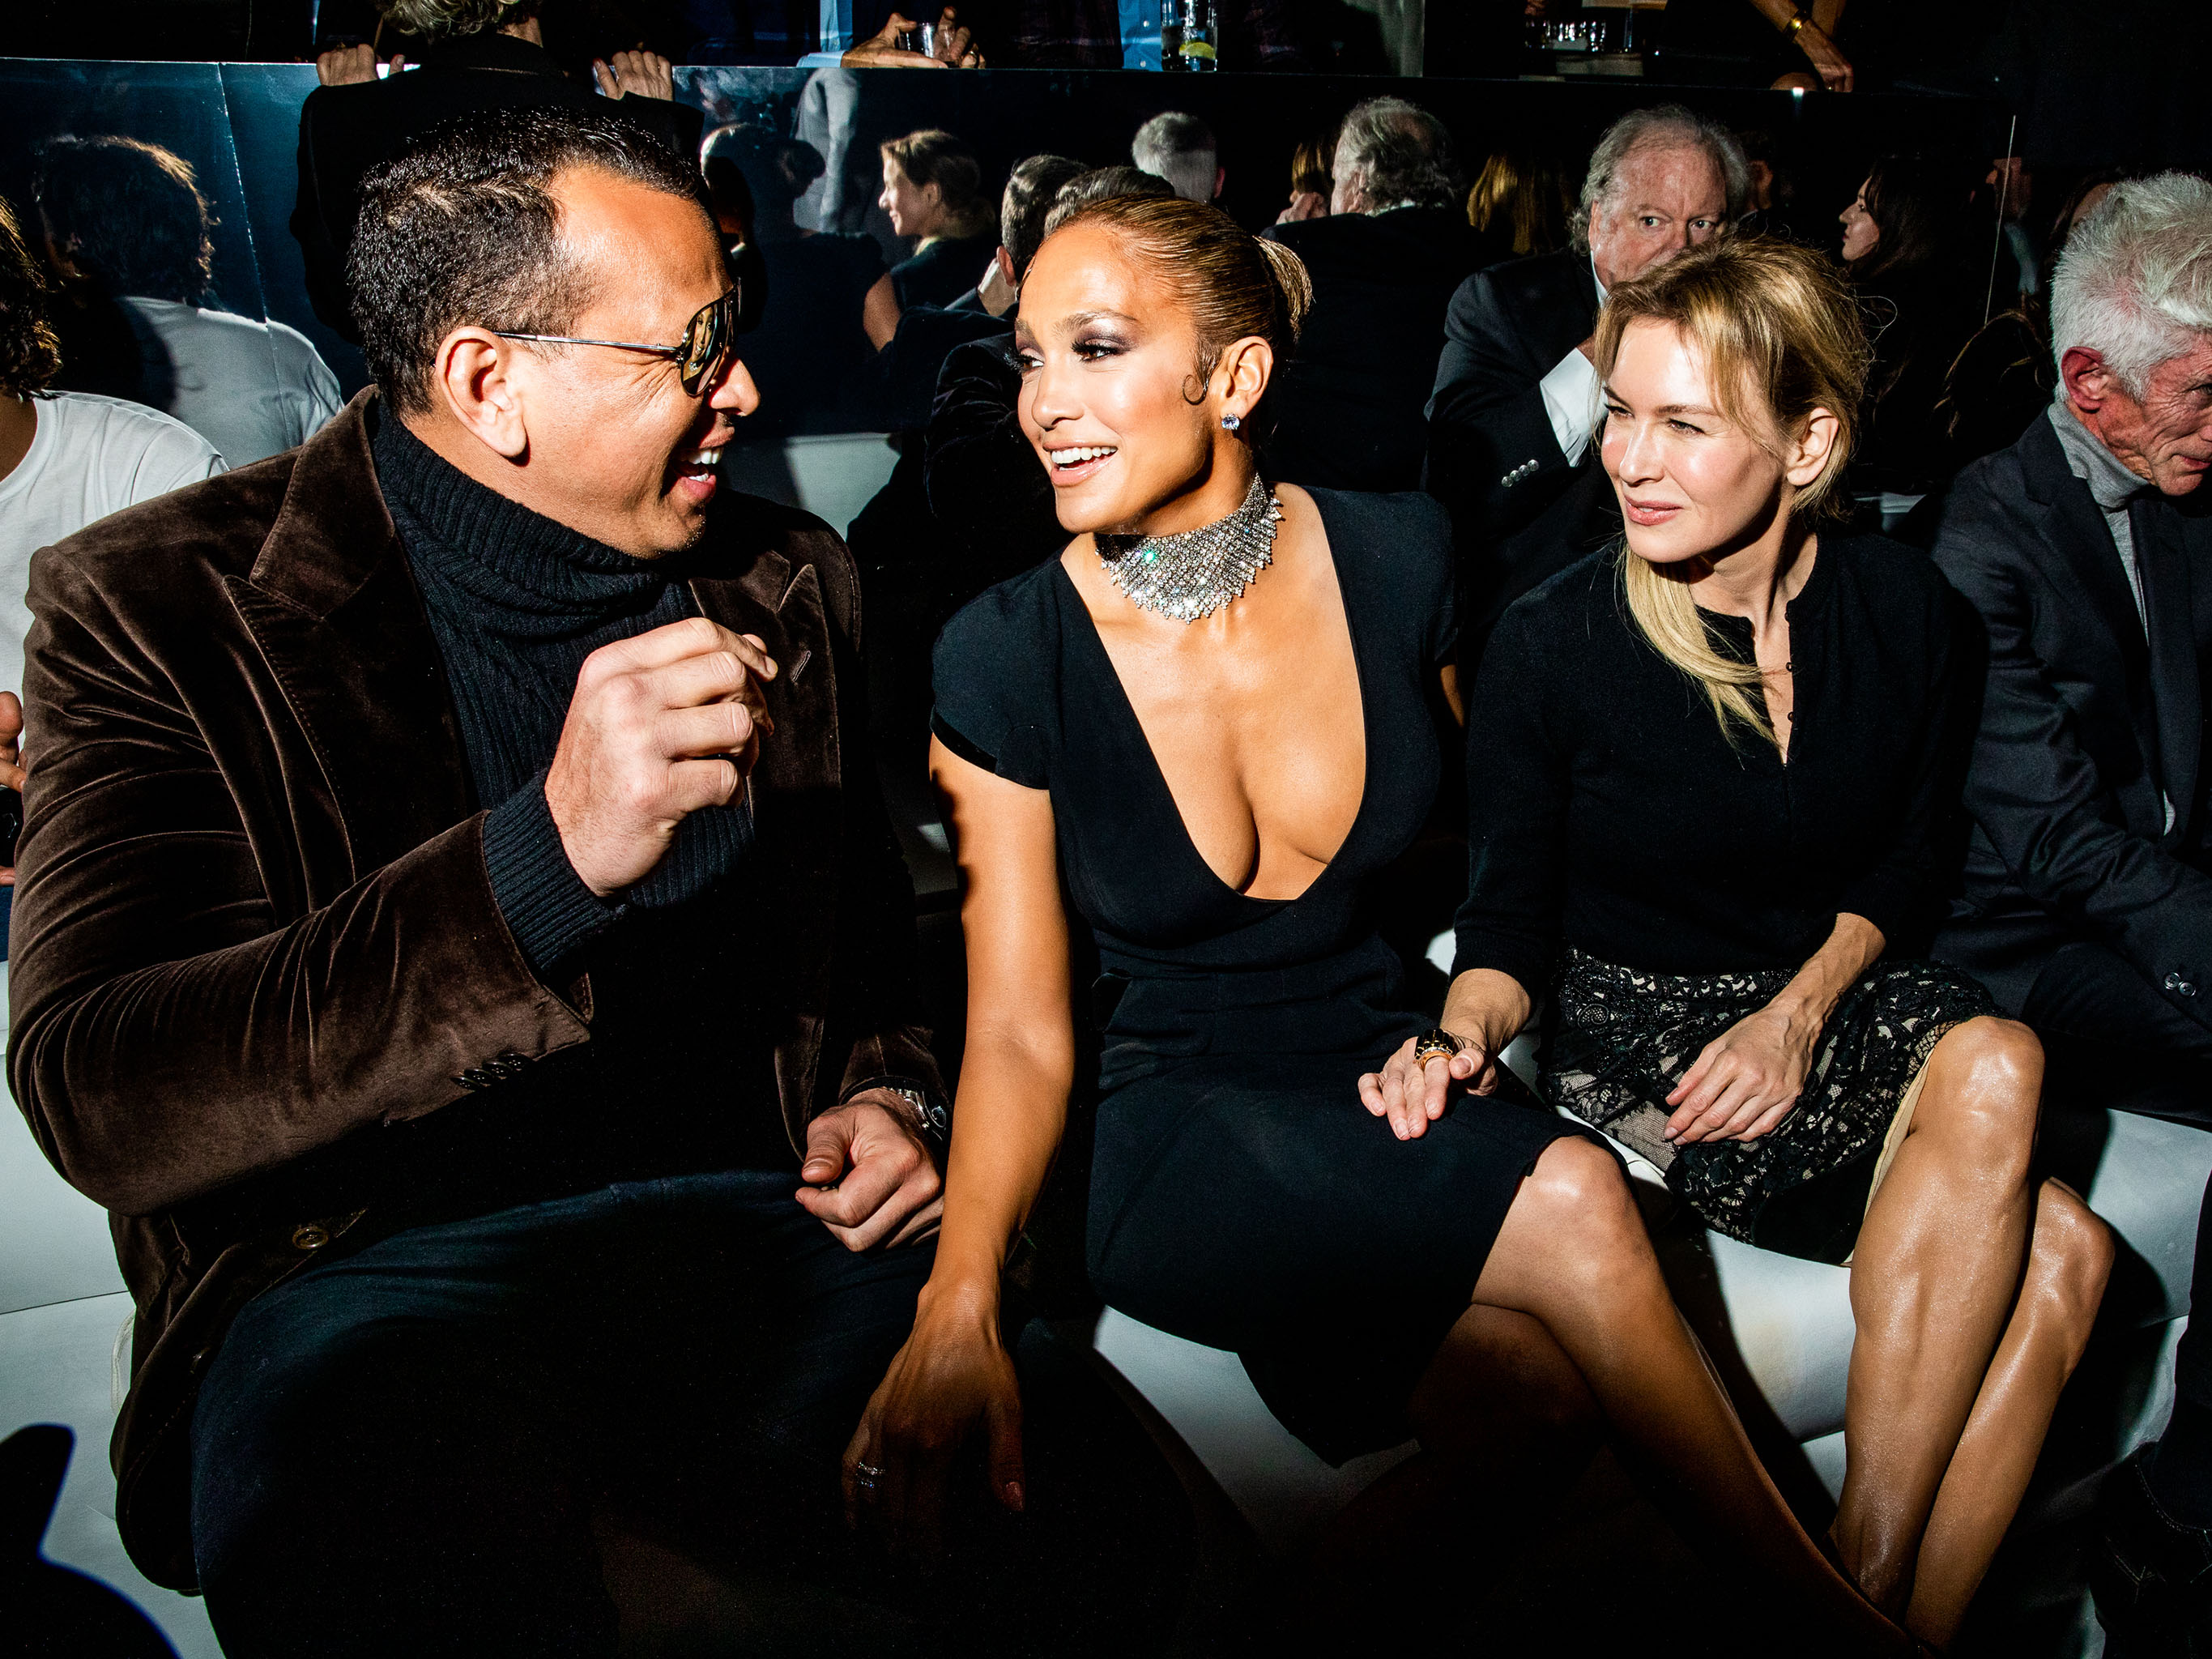 Alex Rodriguez, Jennifer Lopez, and Renée Zellweger